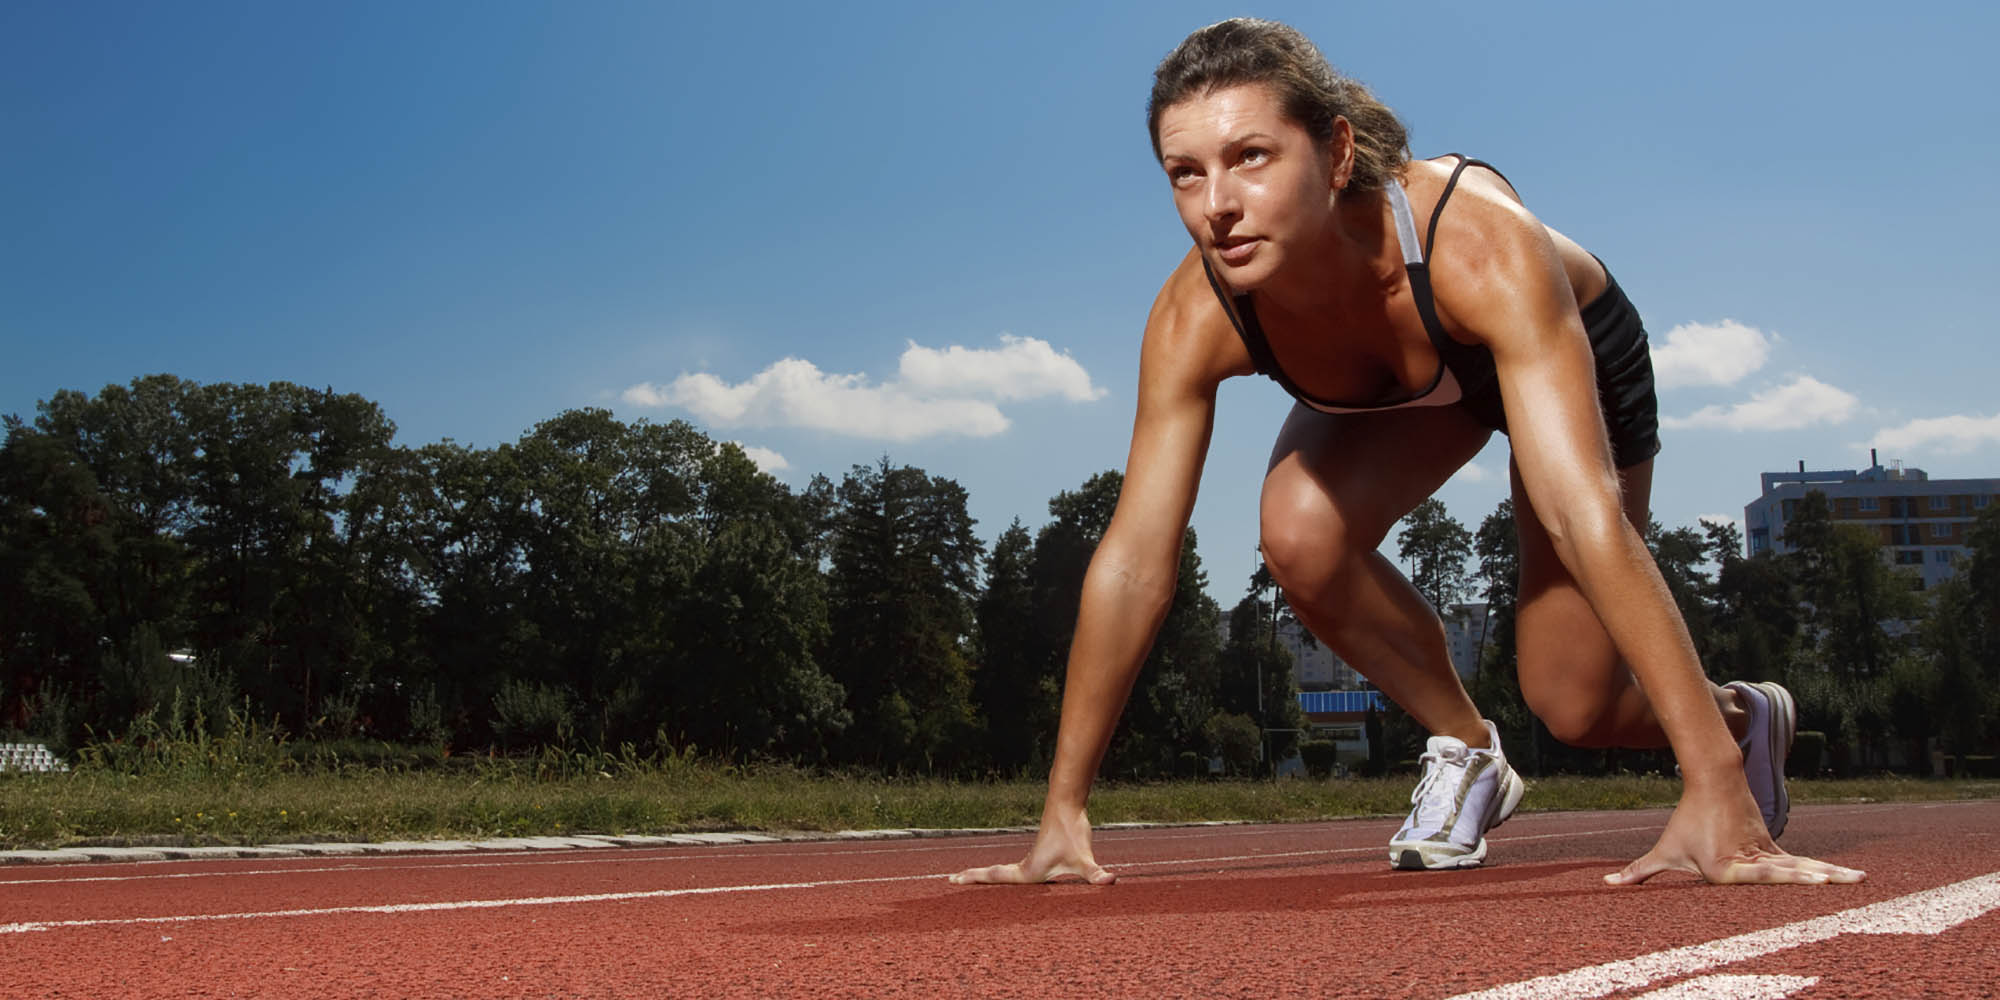 Interval Training: The Best Way to See Quick Results